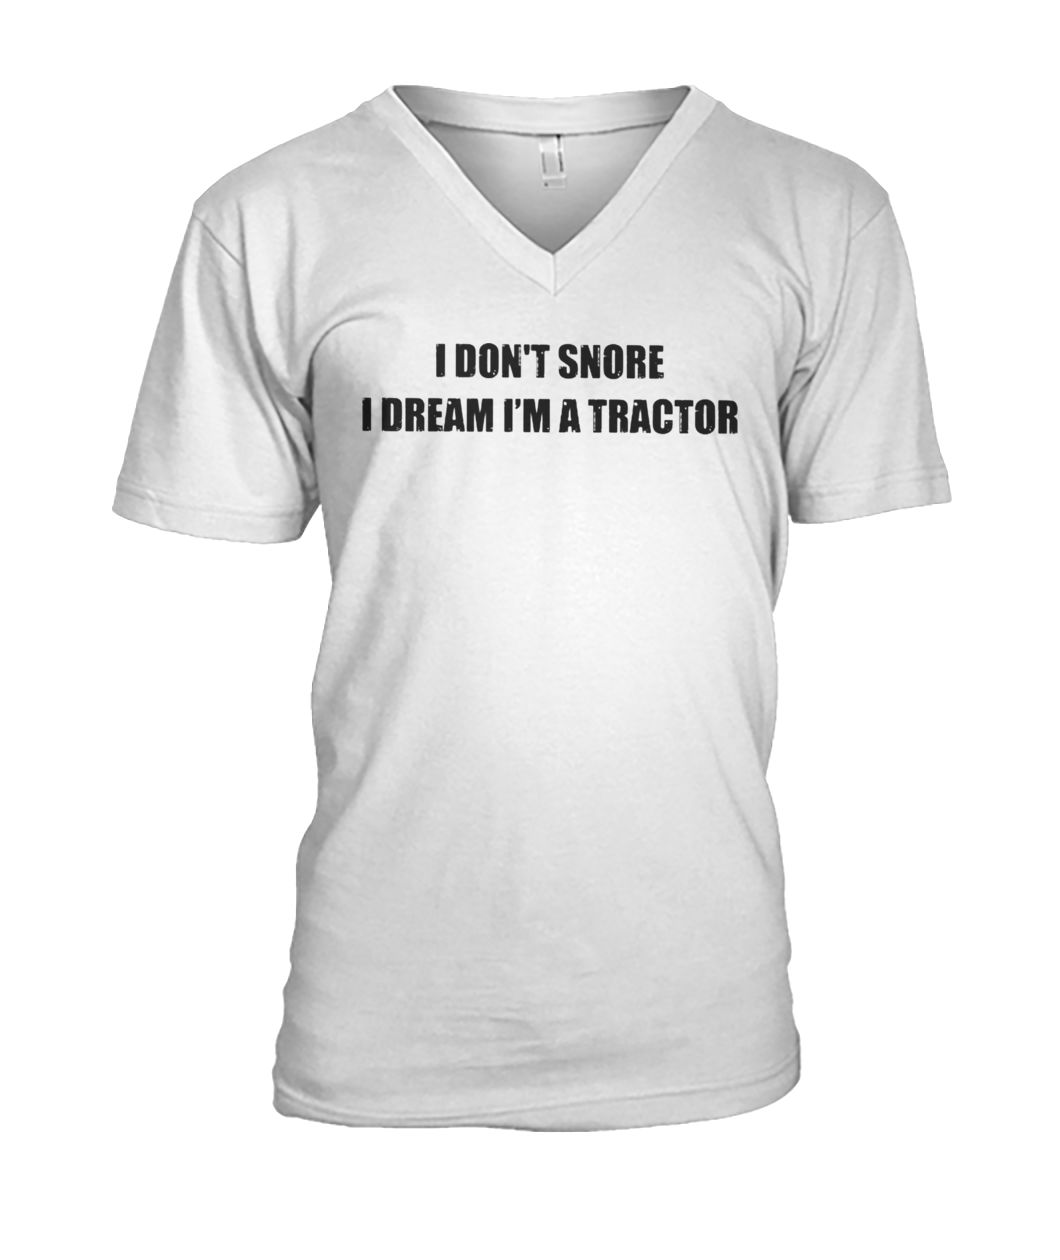 I don't snore I dream I'm a tractor mens v-neck